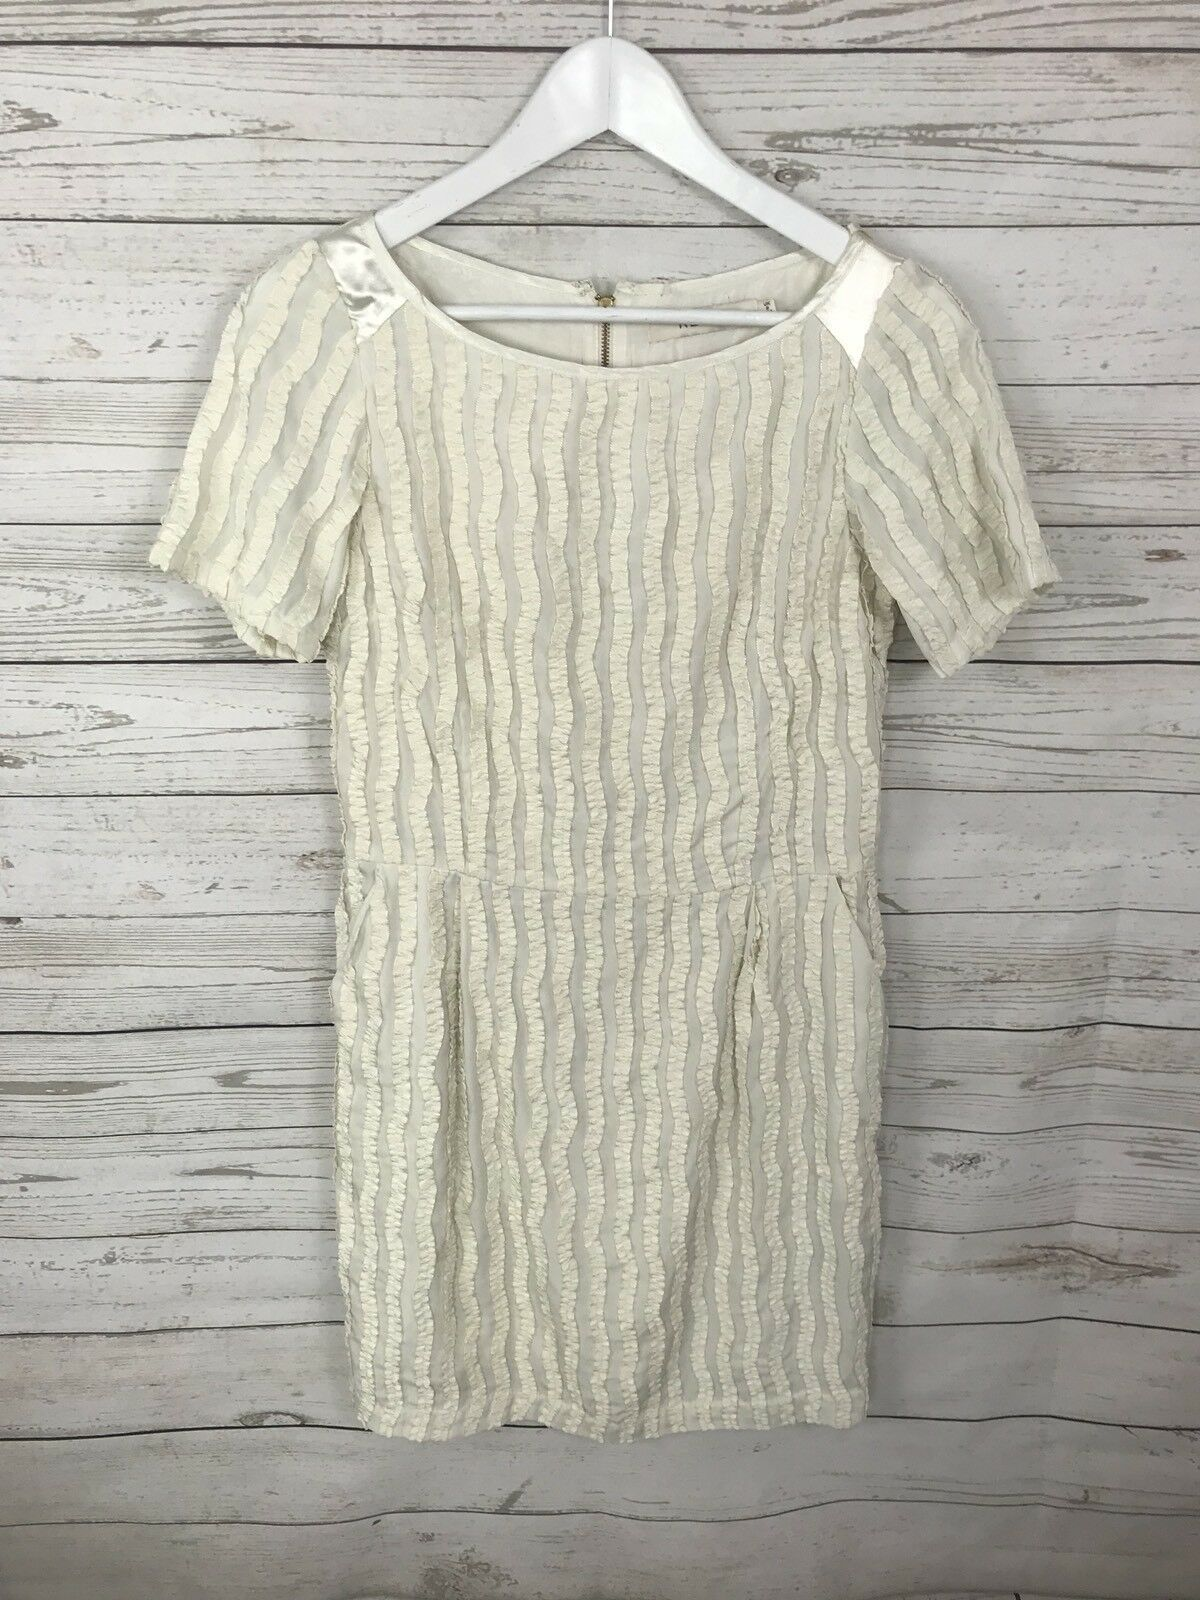 REISS Shift Dress - Size UK6 - Cream - Great Condition